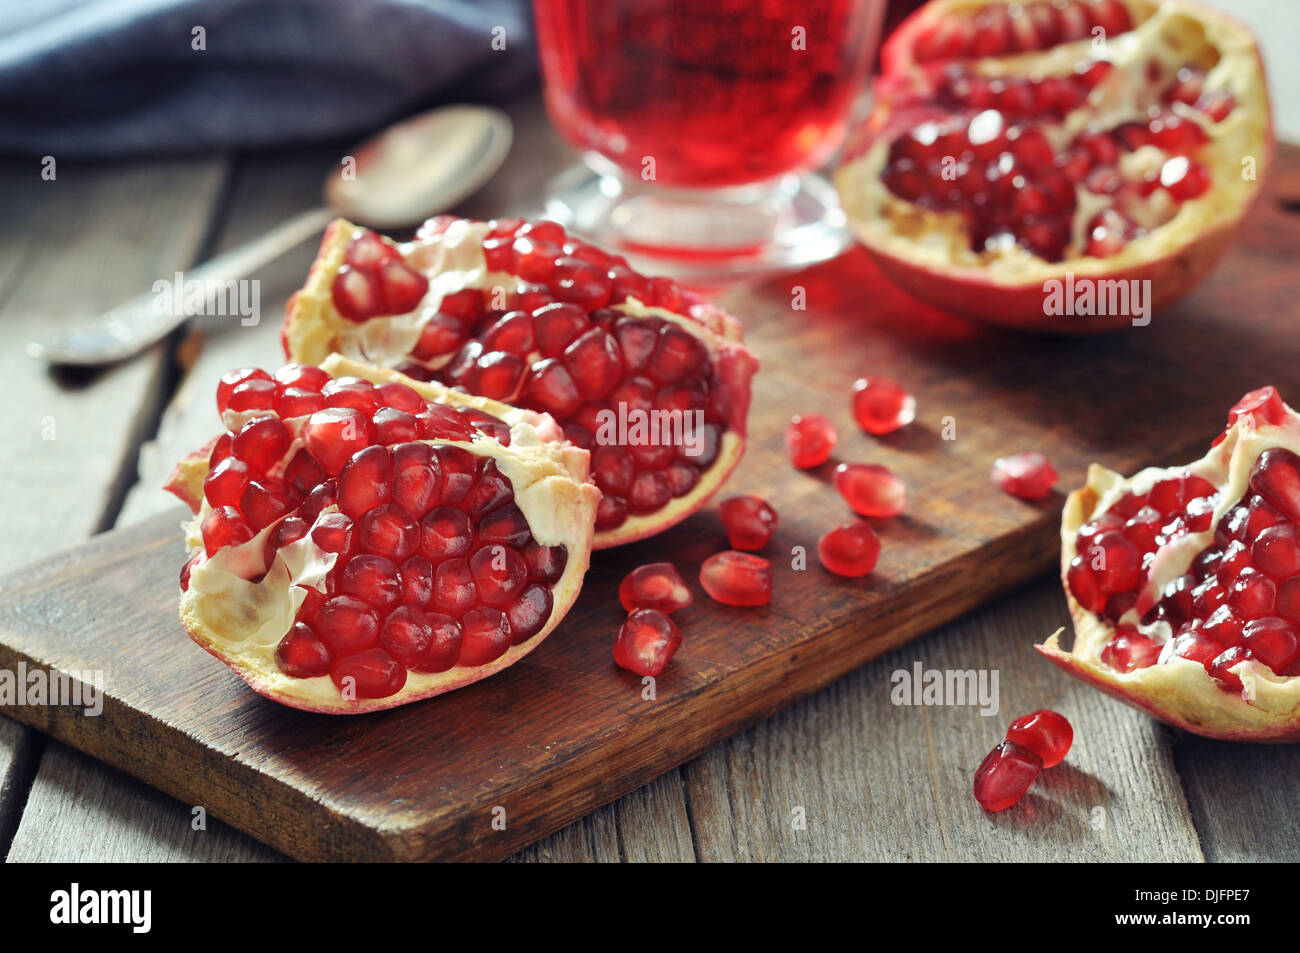 Ripe pomegranate fruit and glass of juice on wooden background Stock Photo